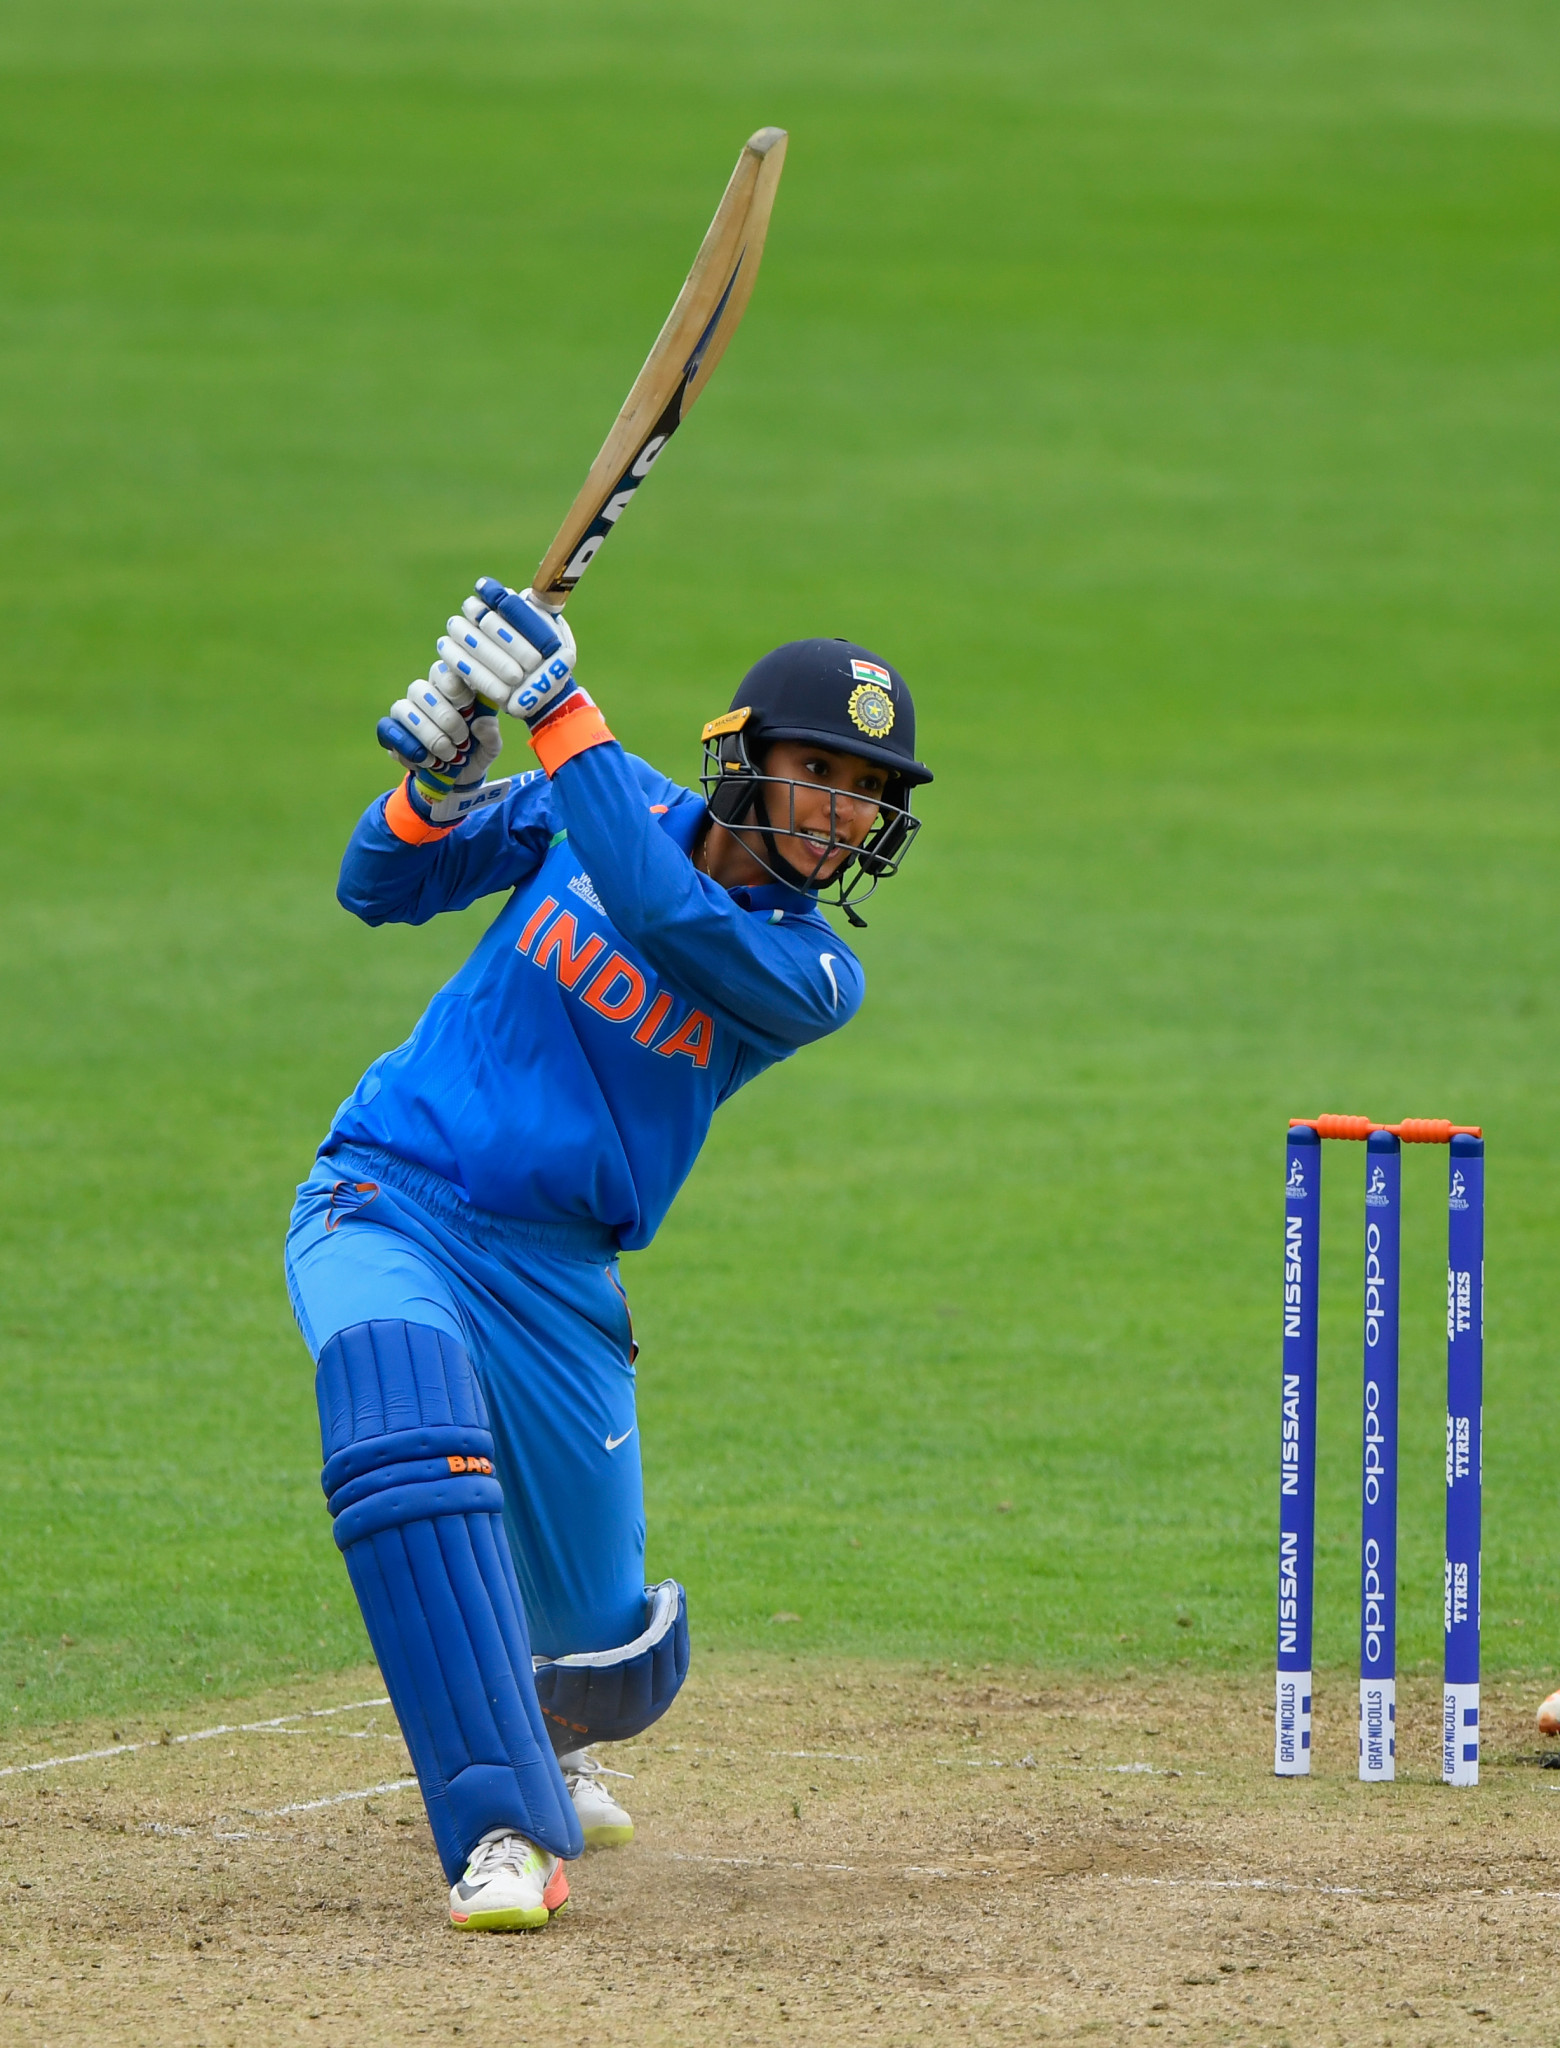 Smriti Mandhana has been in fine form with the bat ©Getty Images